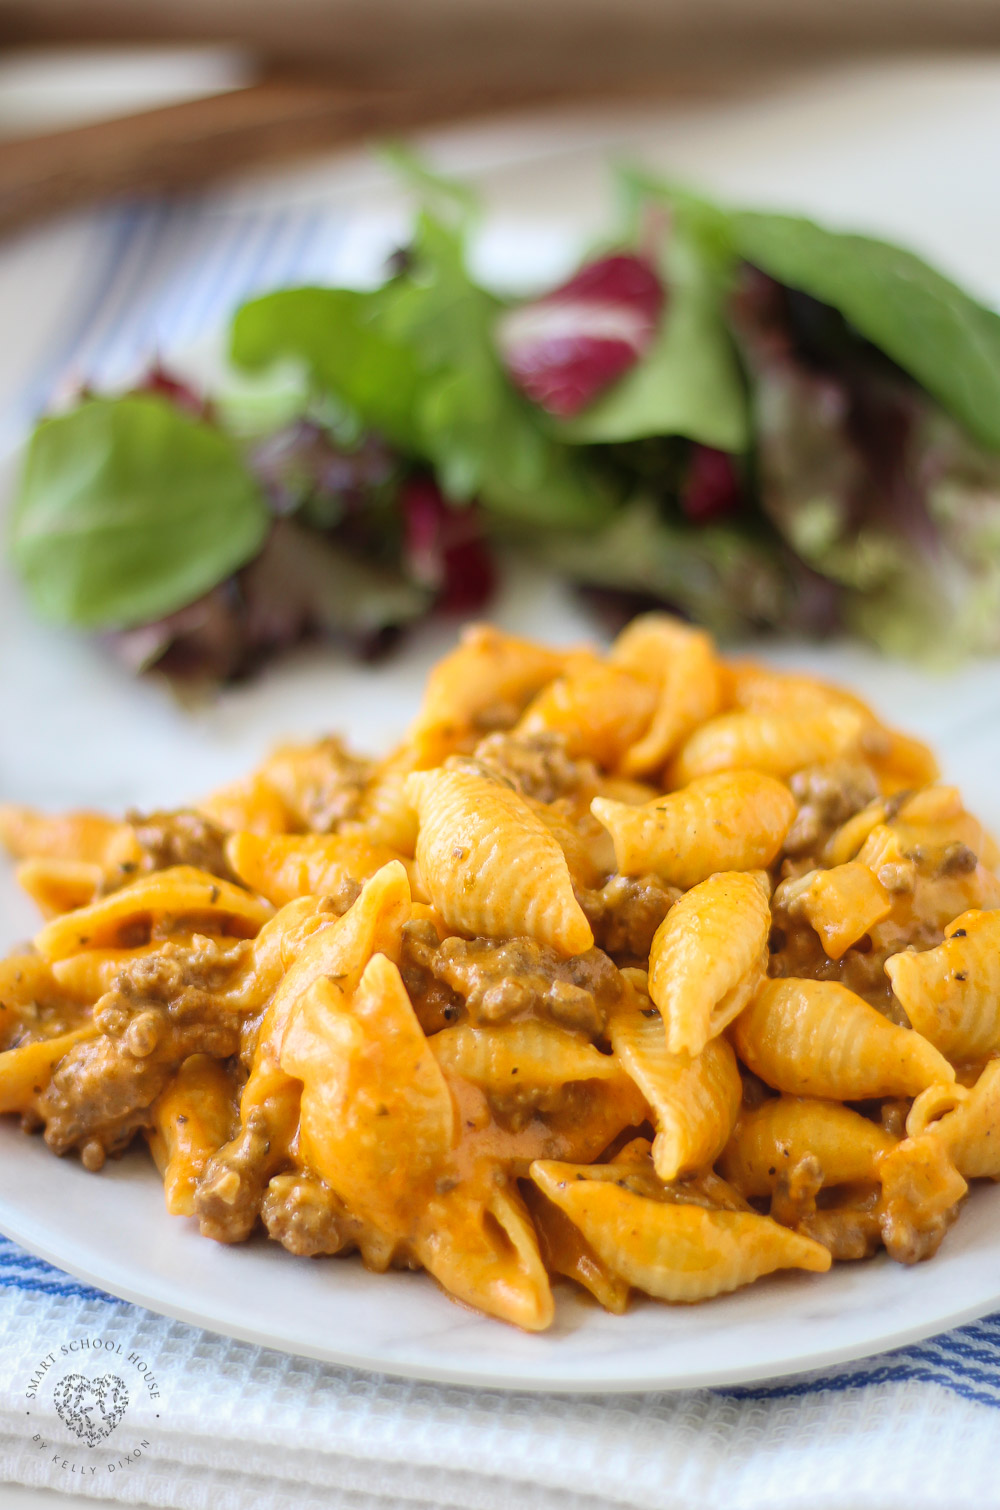 A quick and easy dinner recipe for the family! Creamy, filling, and comforting:) This simple dinner is perfect for busy weeknights, is SO delicious, and is budget friendly. Made with pasta shells, tomato soup, cheese, and some simple seasonings to taste.